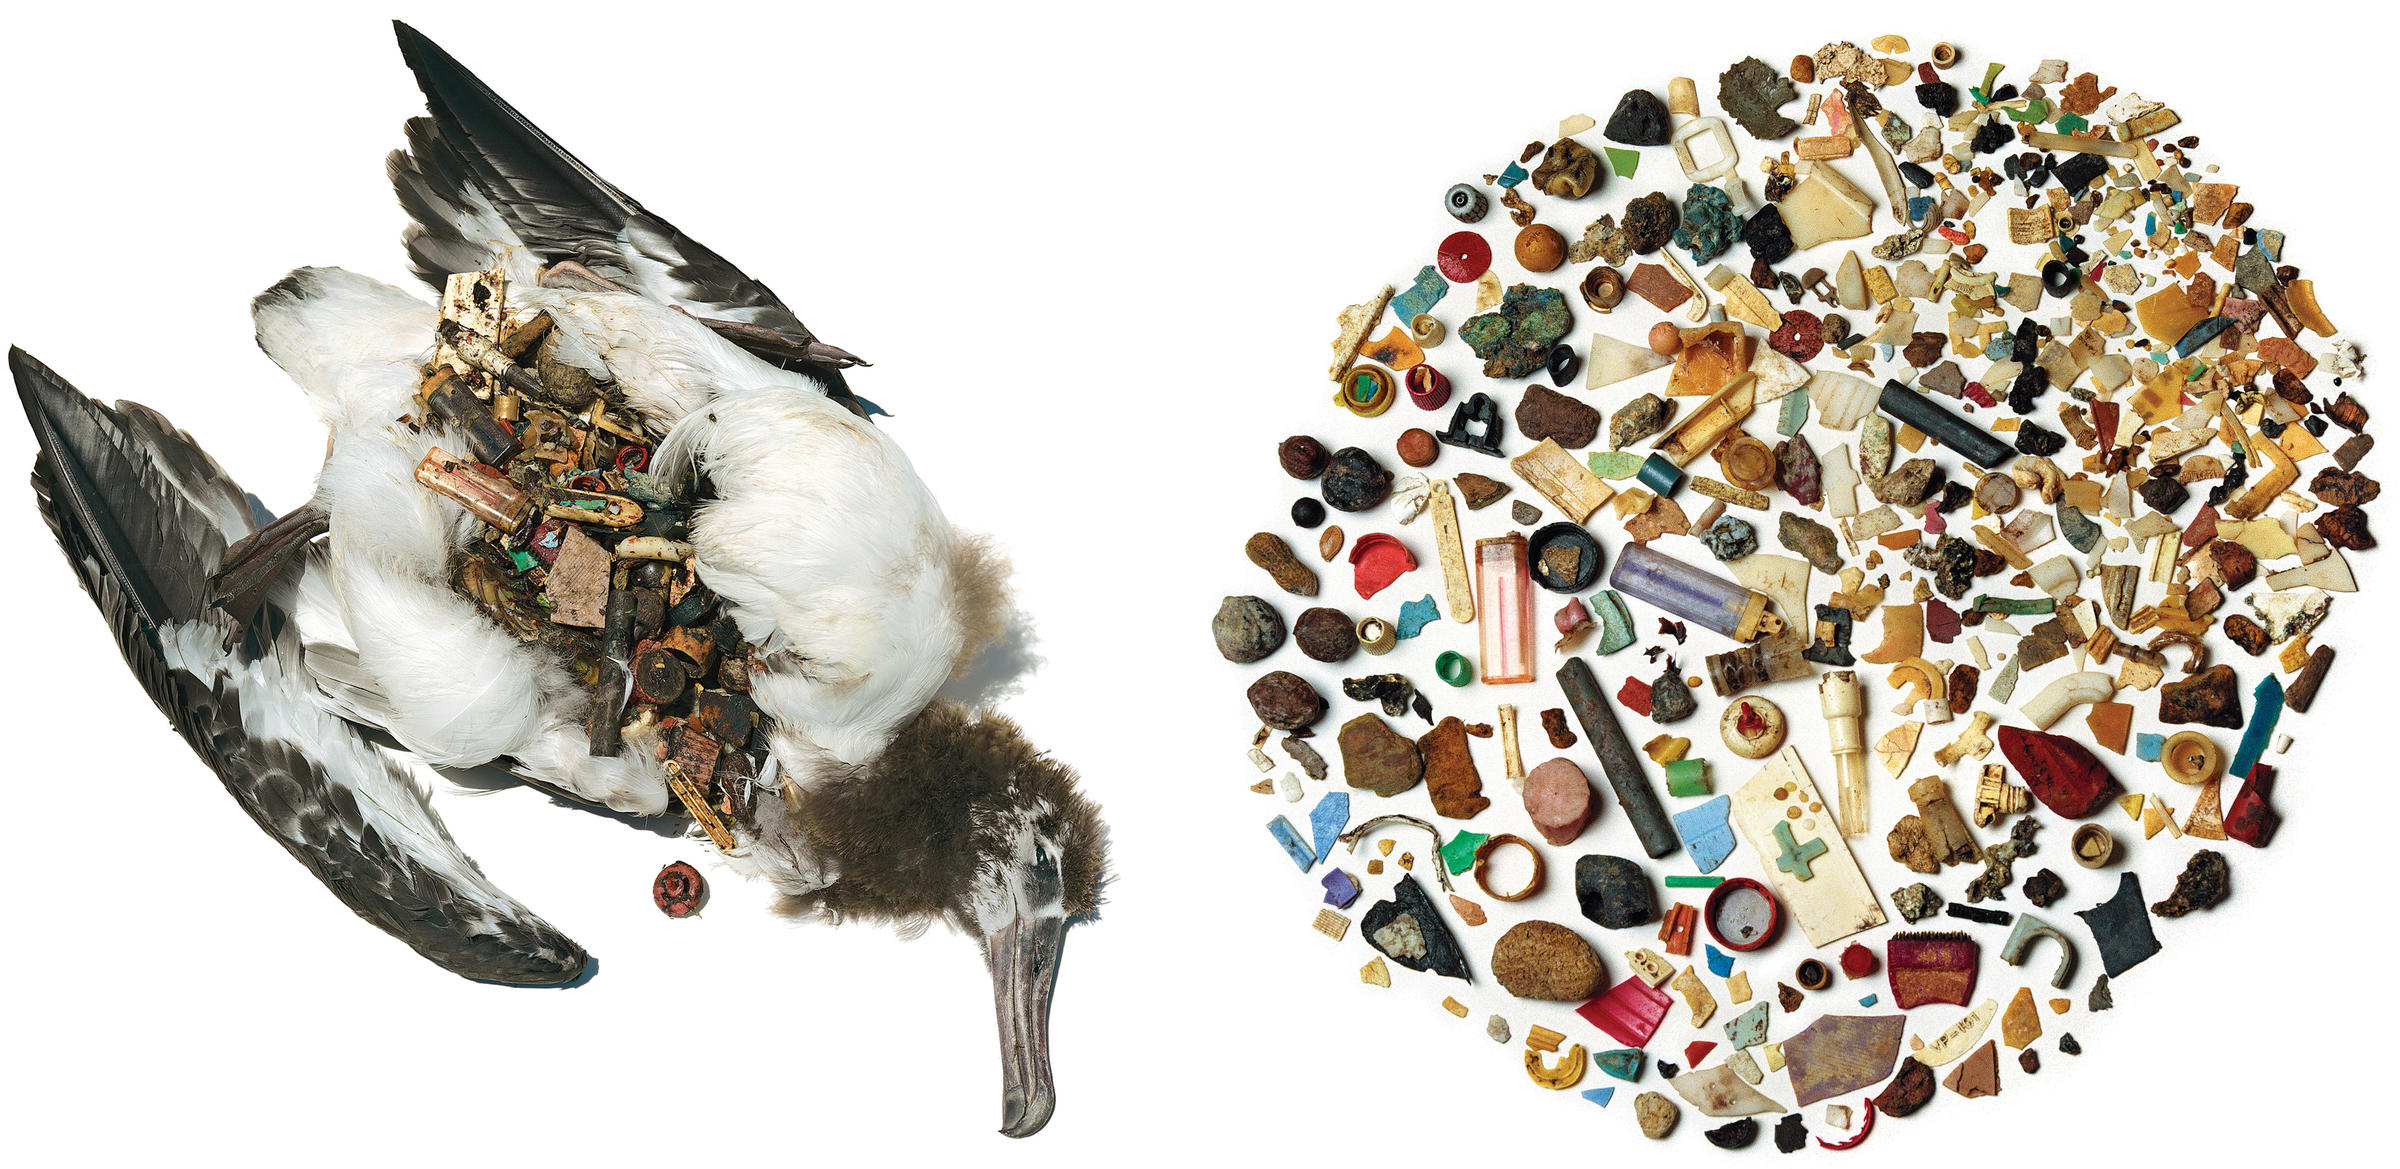 Seabirds often mistake small pieces of plastic for food, which takes a toll on the health of individuals and entire populations.